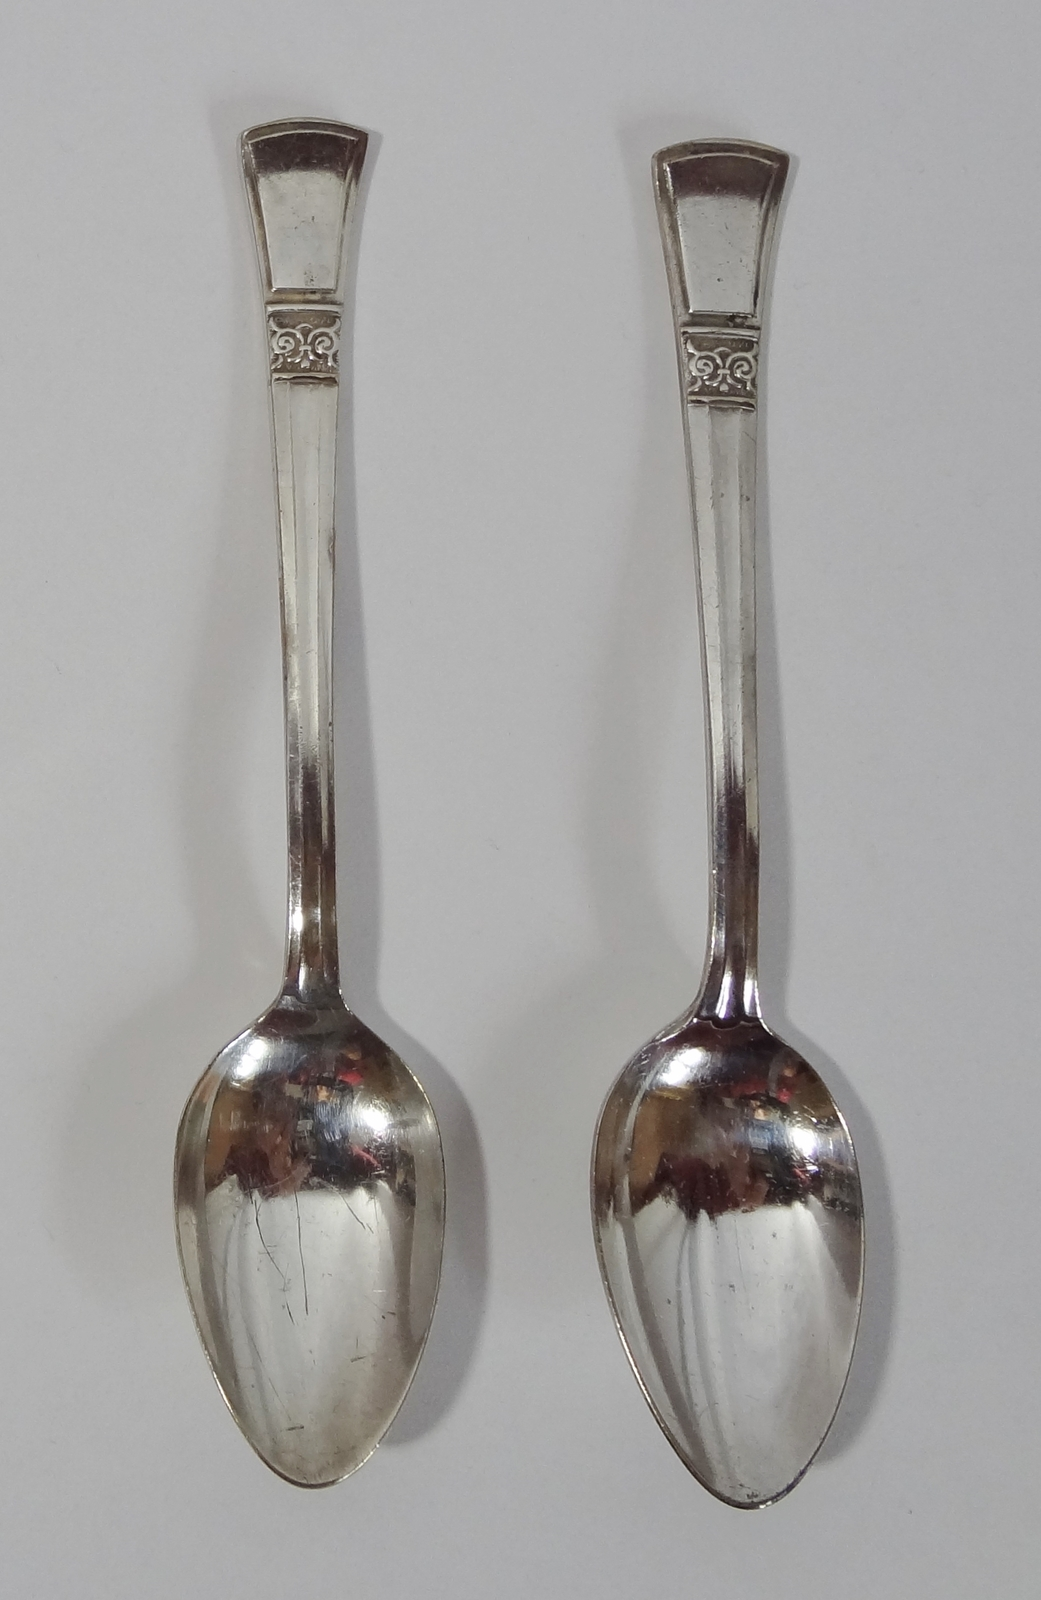 County Andora Silver Plate Spoons Set of Two Tableware Cutlery Flatware  - $1.49